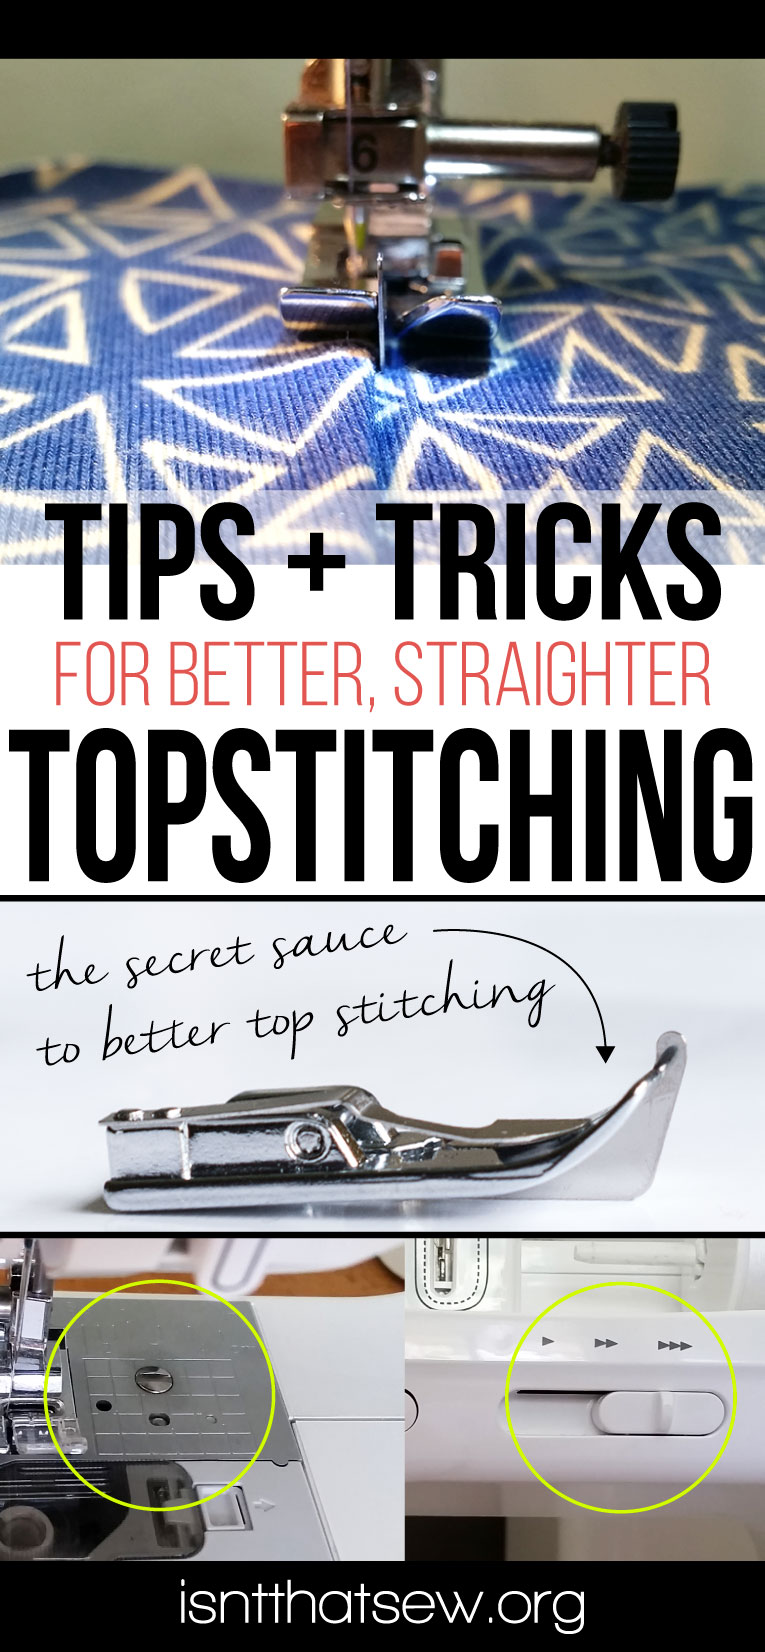 Tips and Tricks for better, straighter topstitching | isntthatsew.org